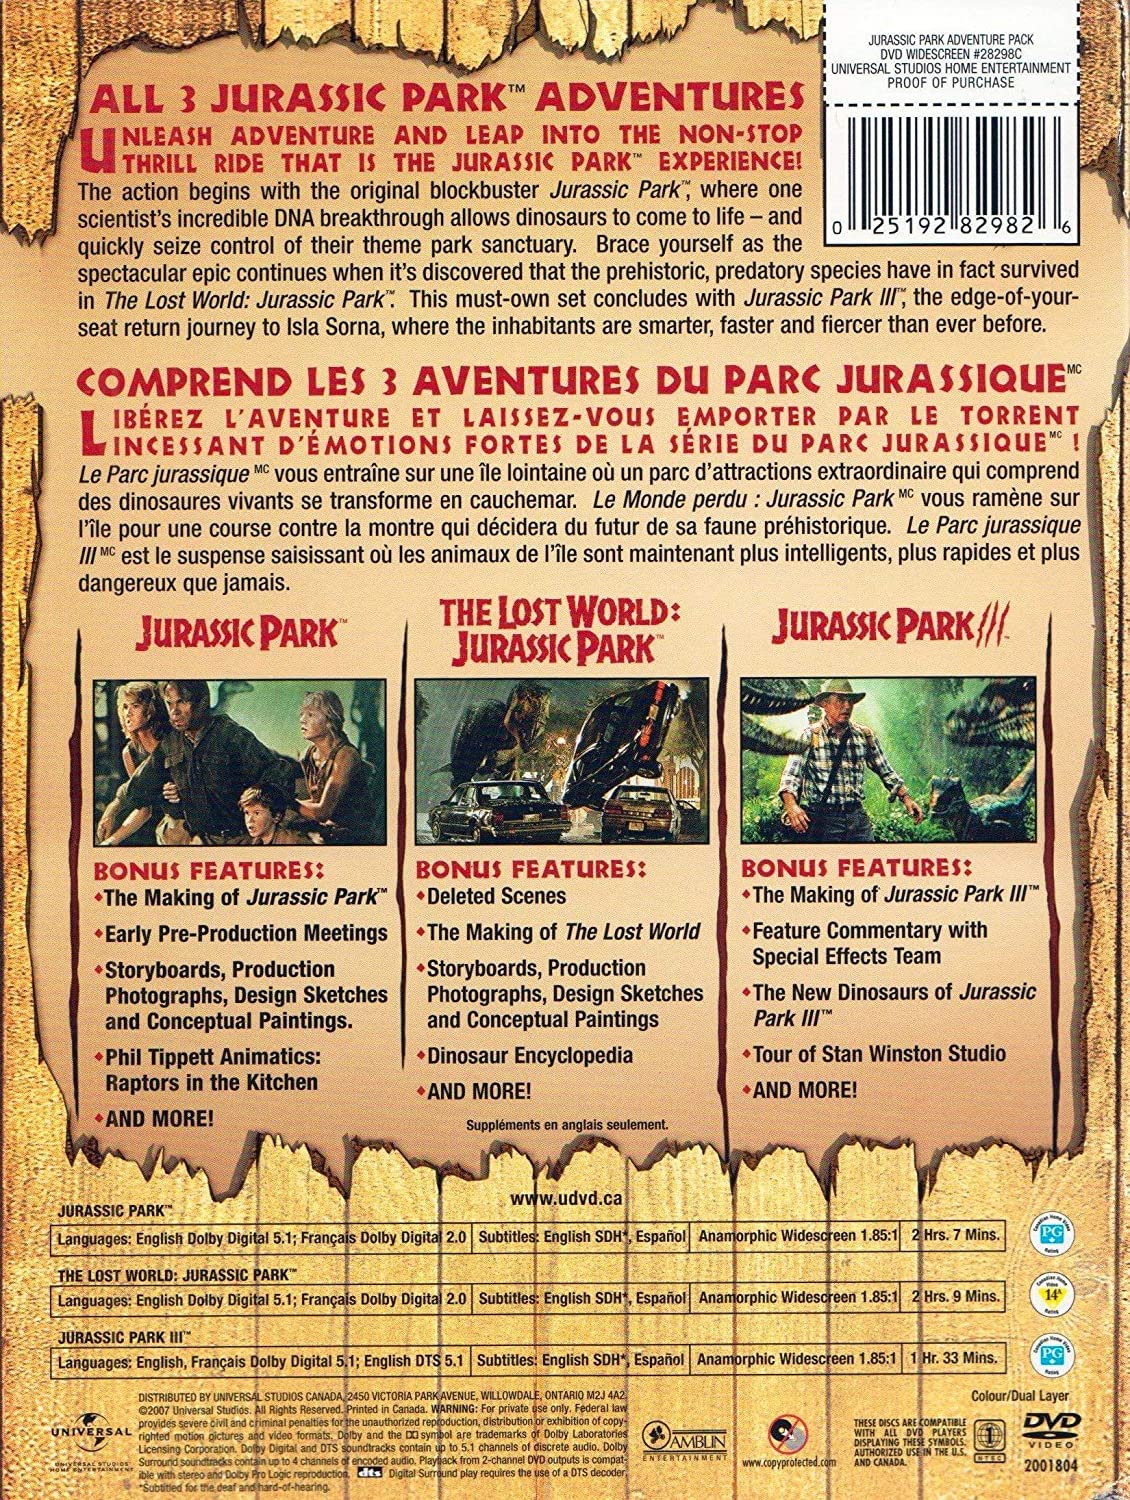 Jurassic Park III [USA] [DVD]: Amazon.es: Jurassic Park Adventure Pack: Cine y Series TV